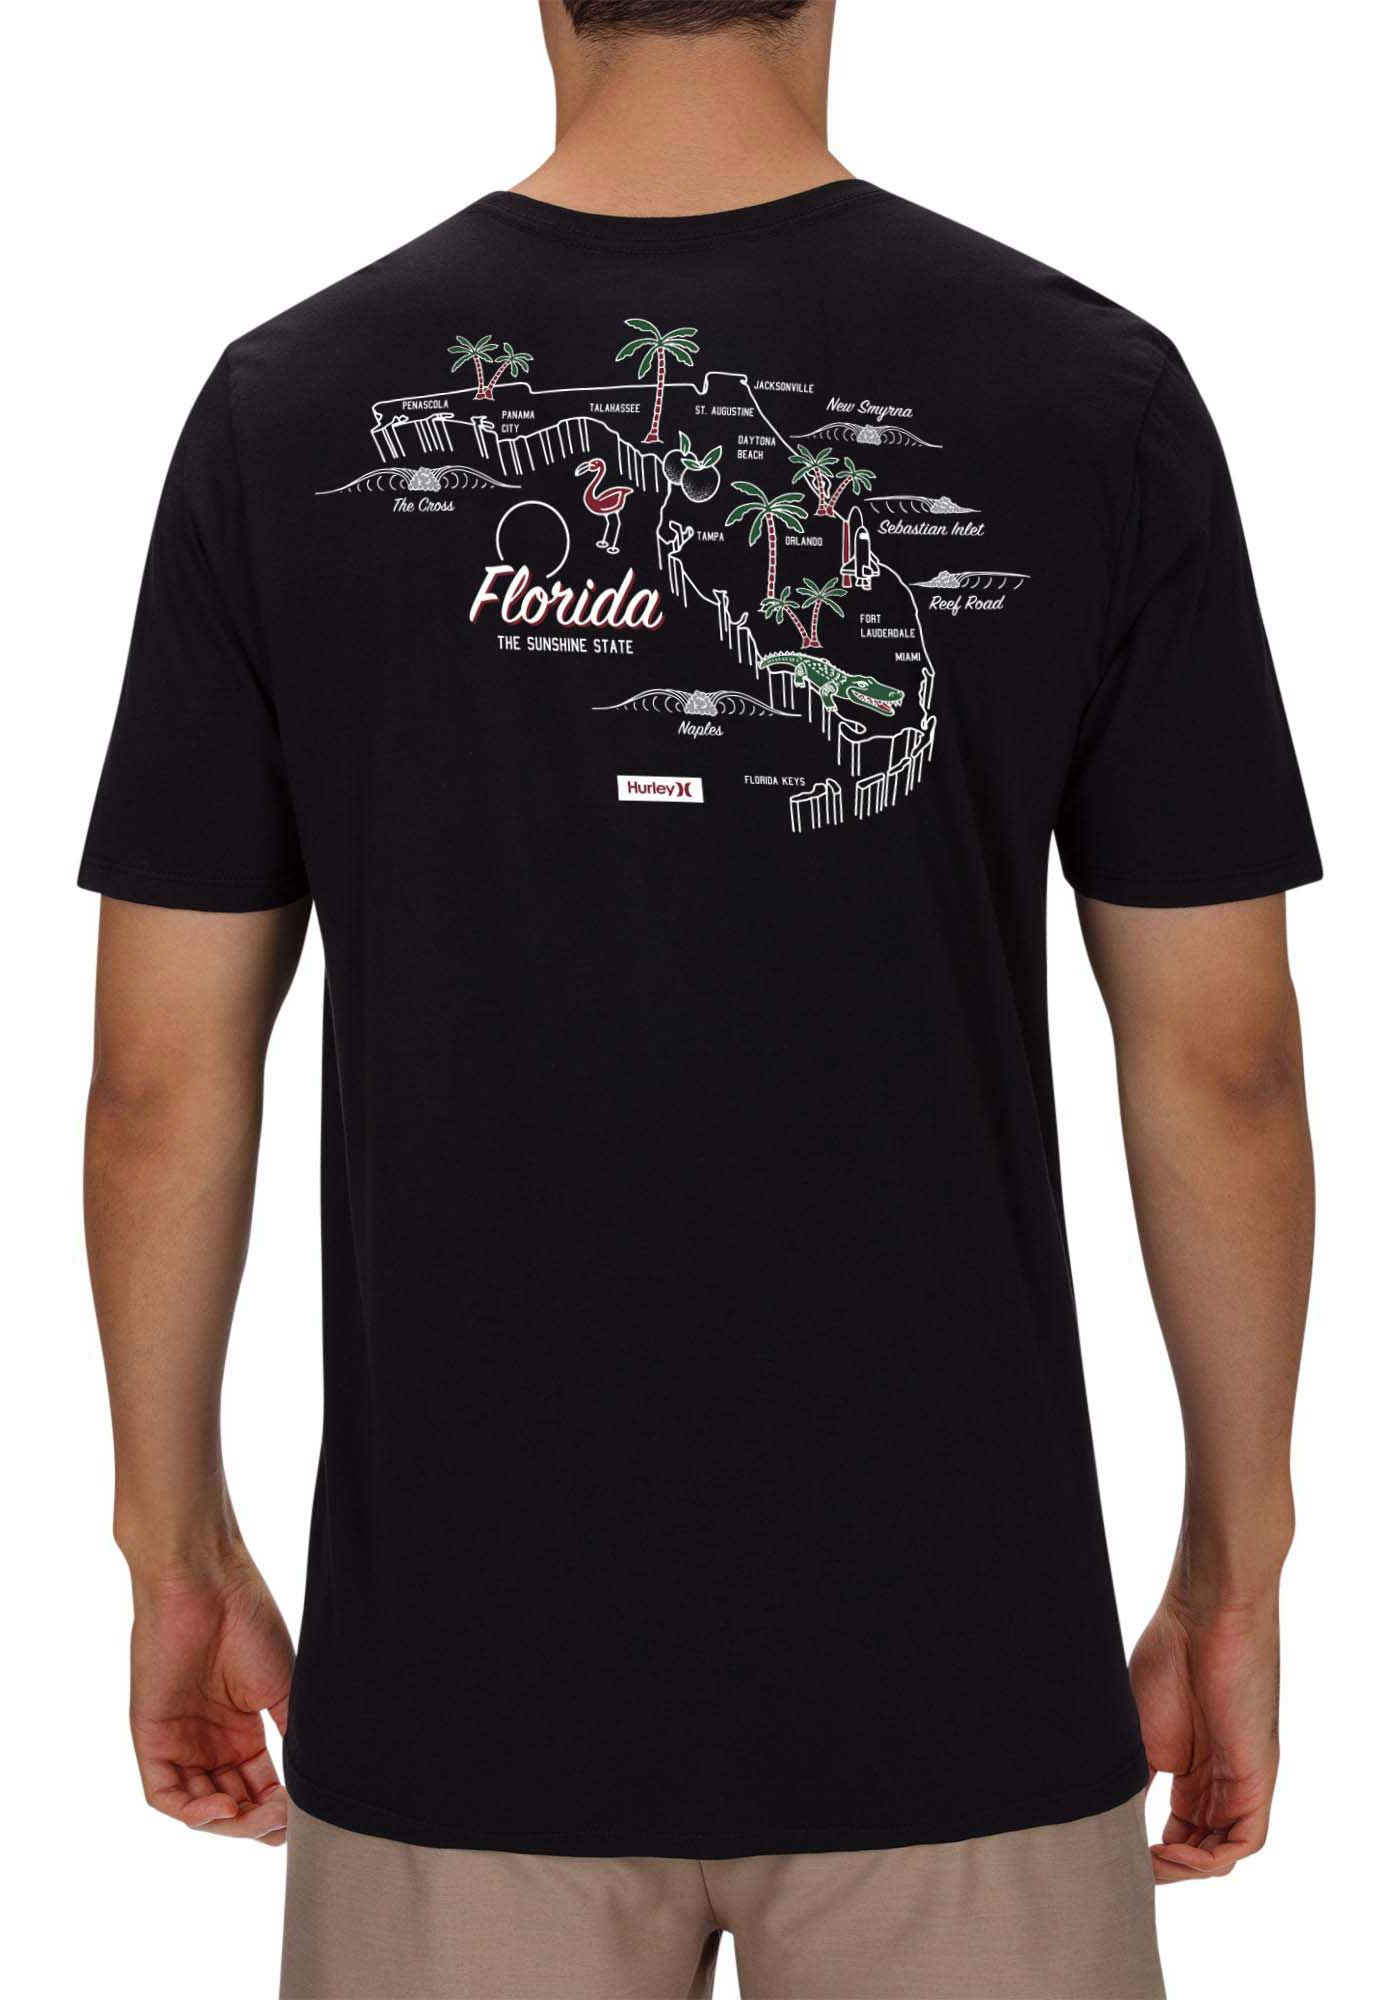 Hurley Men's Florida 3D Maps Premium Short Sleeve T-Shirt